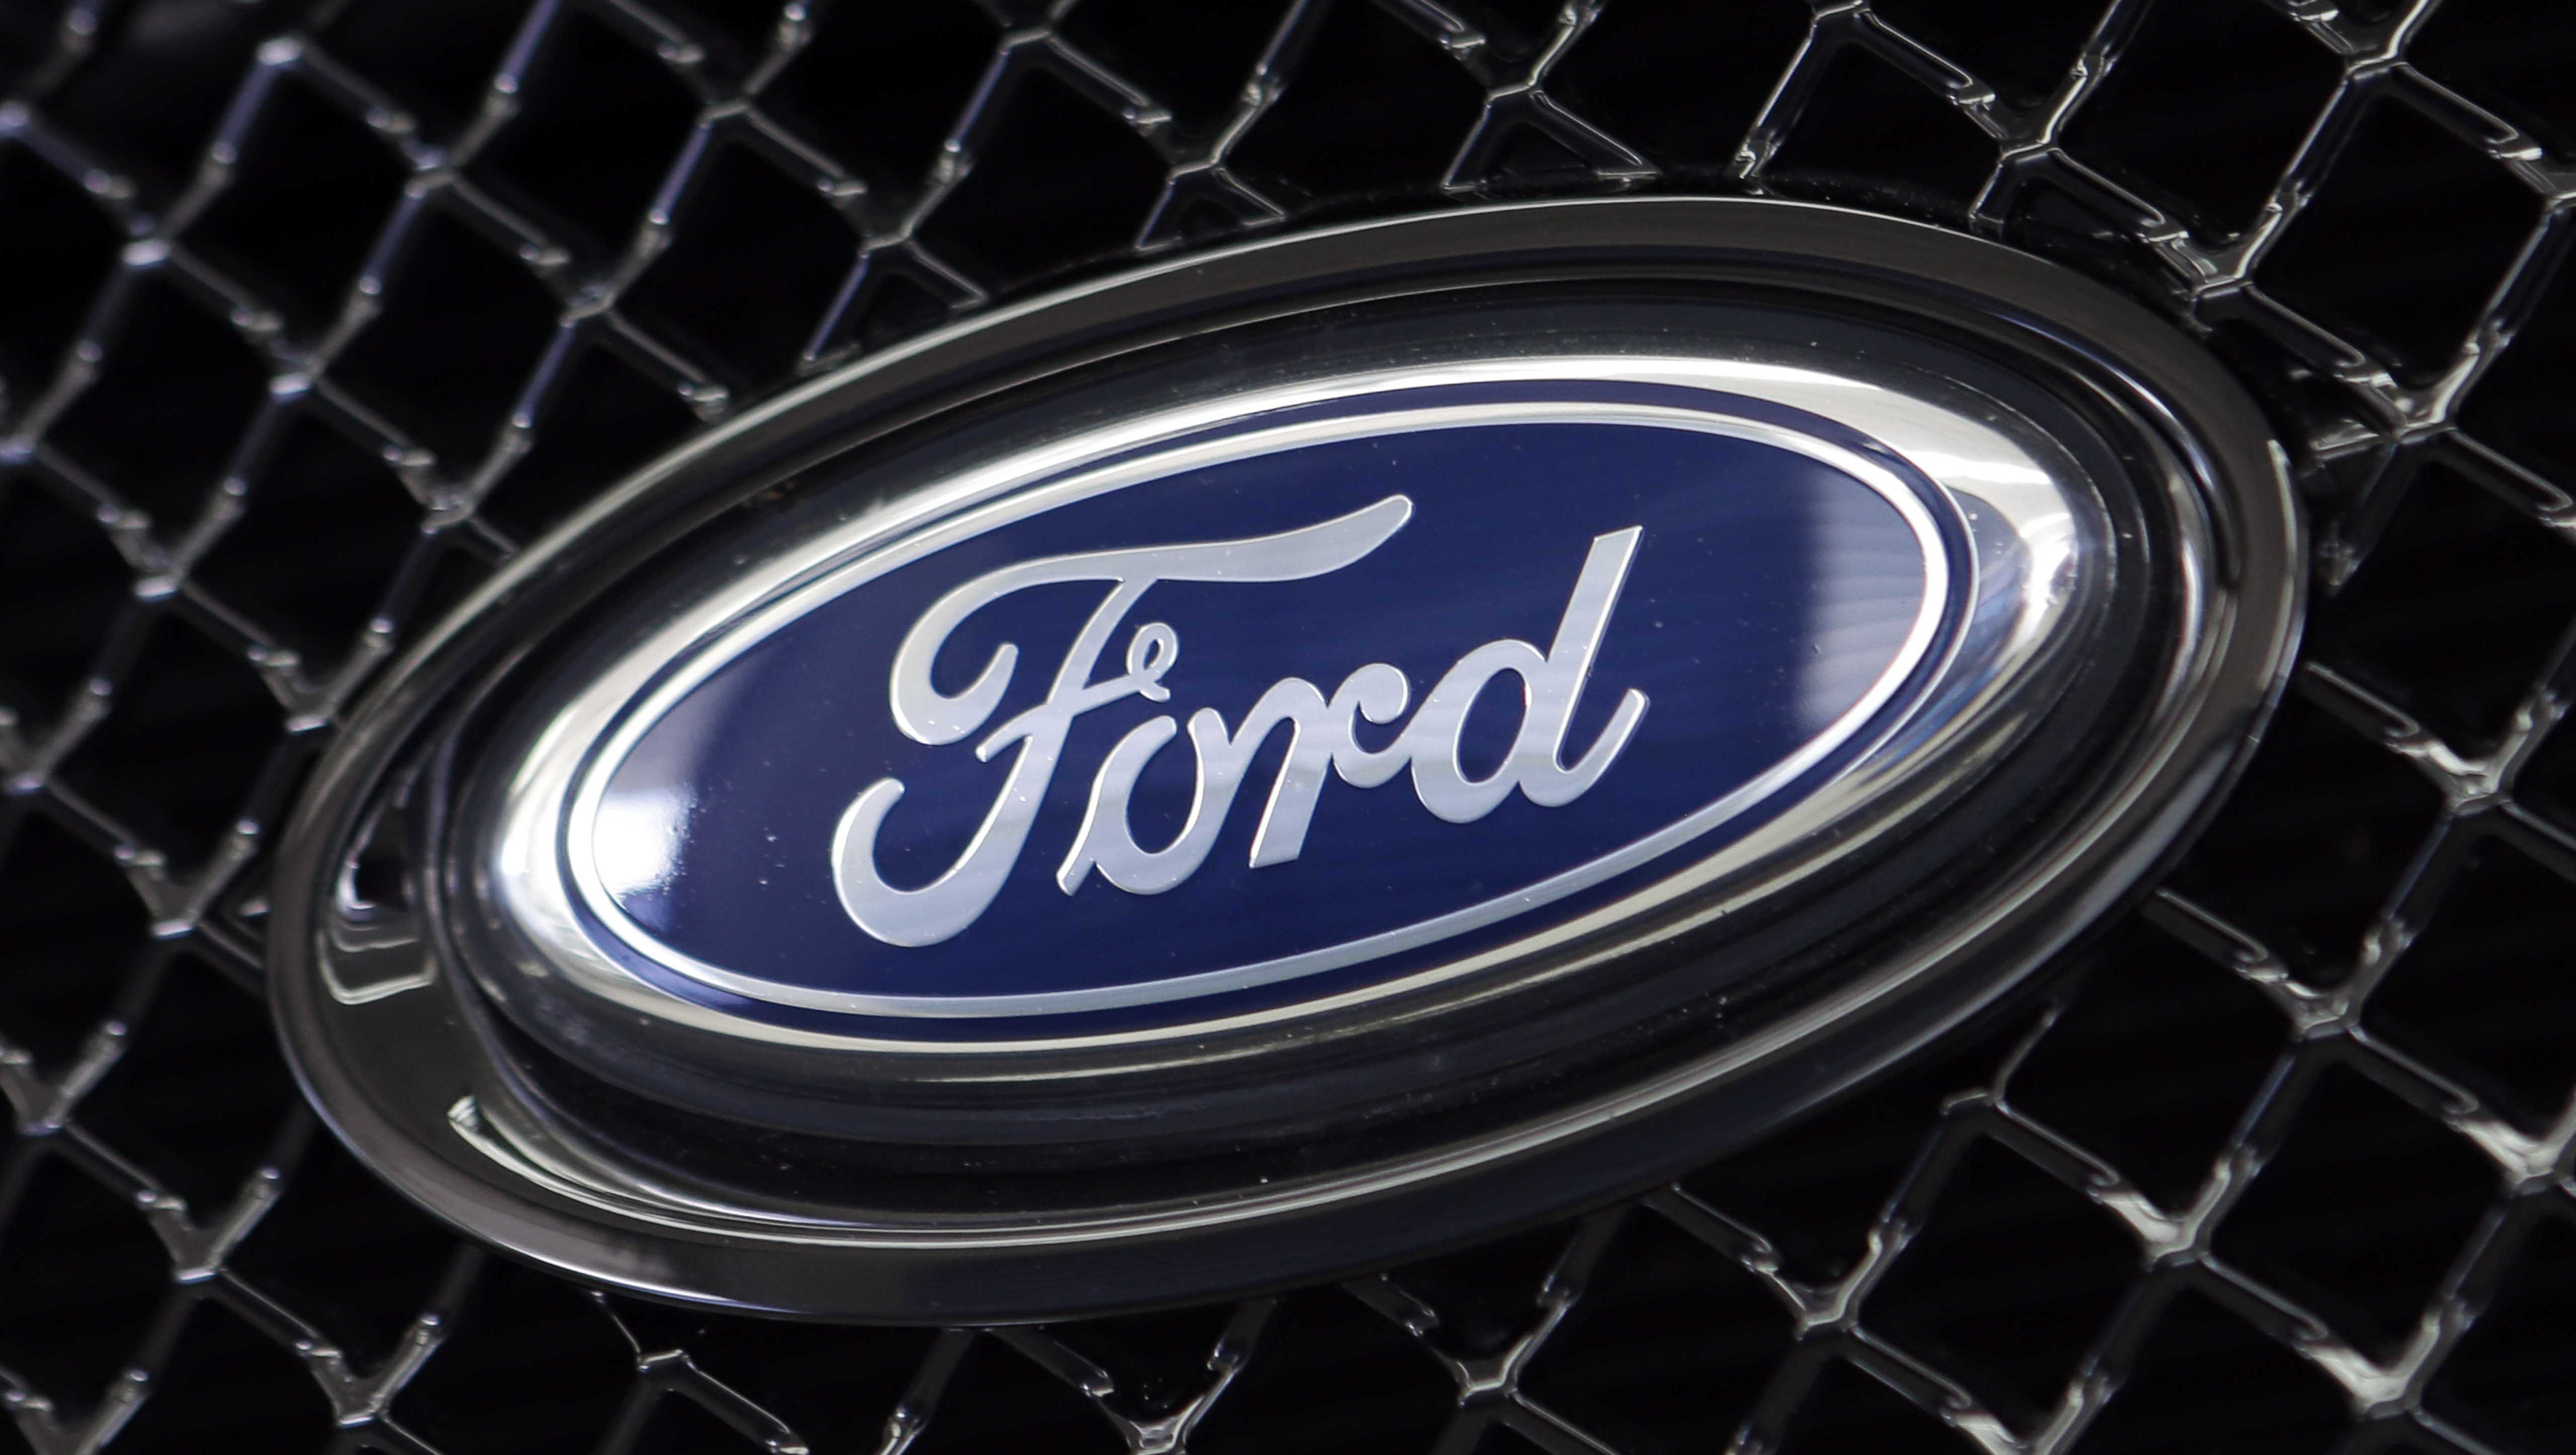 This Aug. 21, 2014 file photo shows the Ford logo on a vehicle at a dealership in Hialeah, Fla.